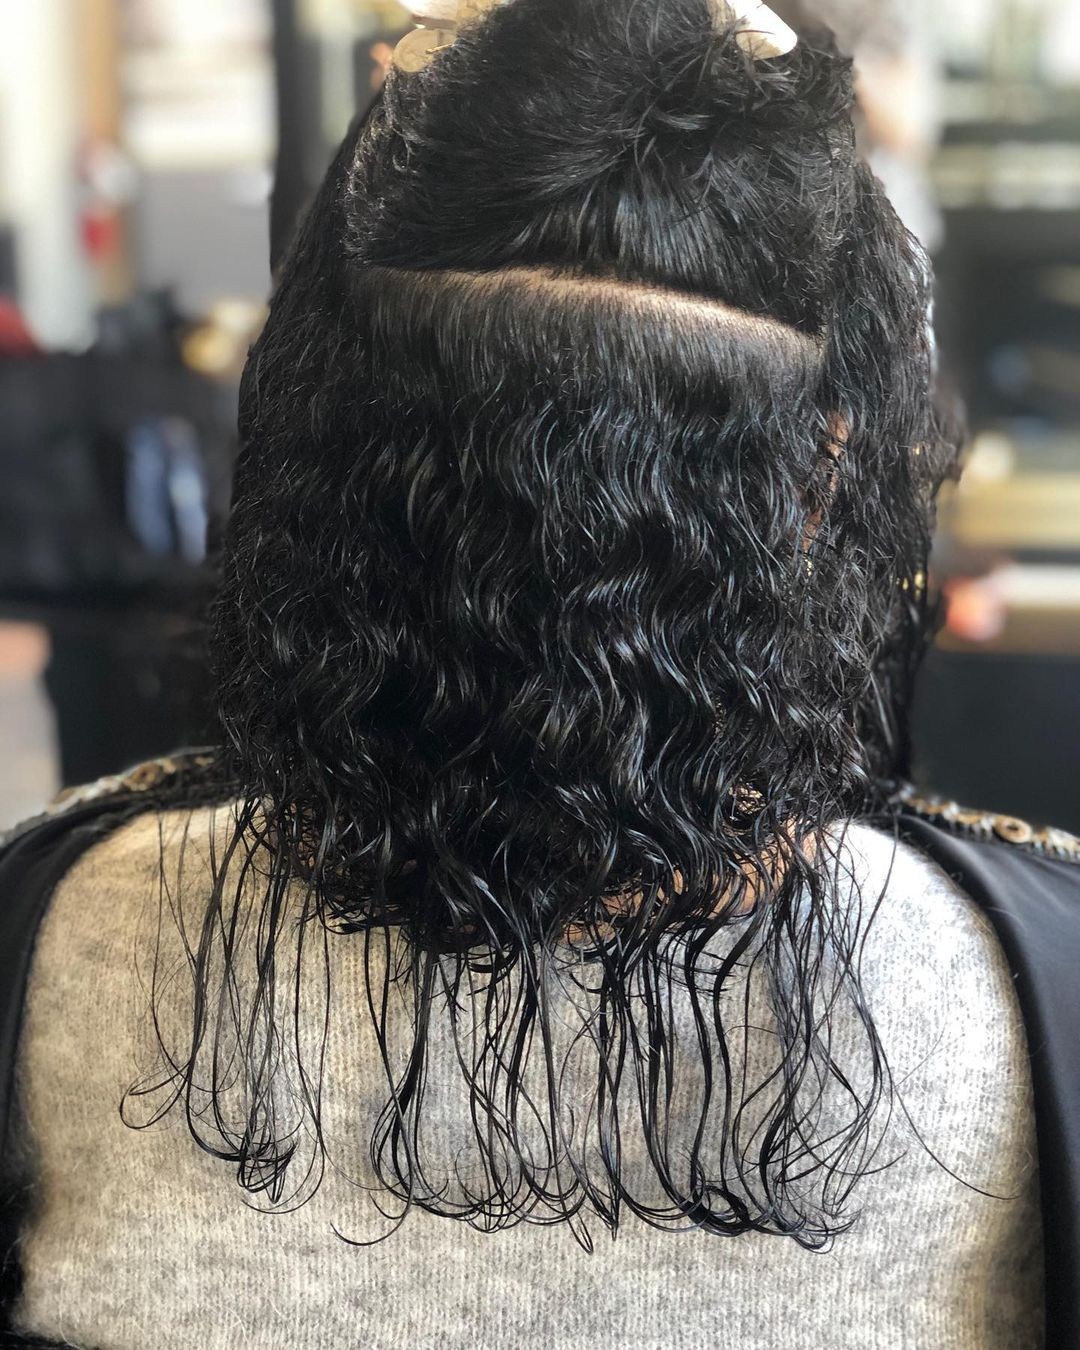 What Does Heat-Damaged Hair Look Like